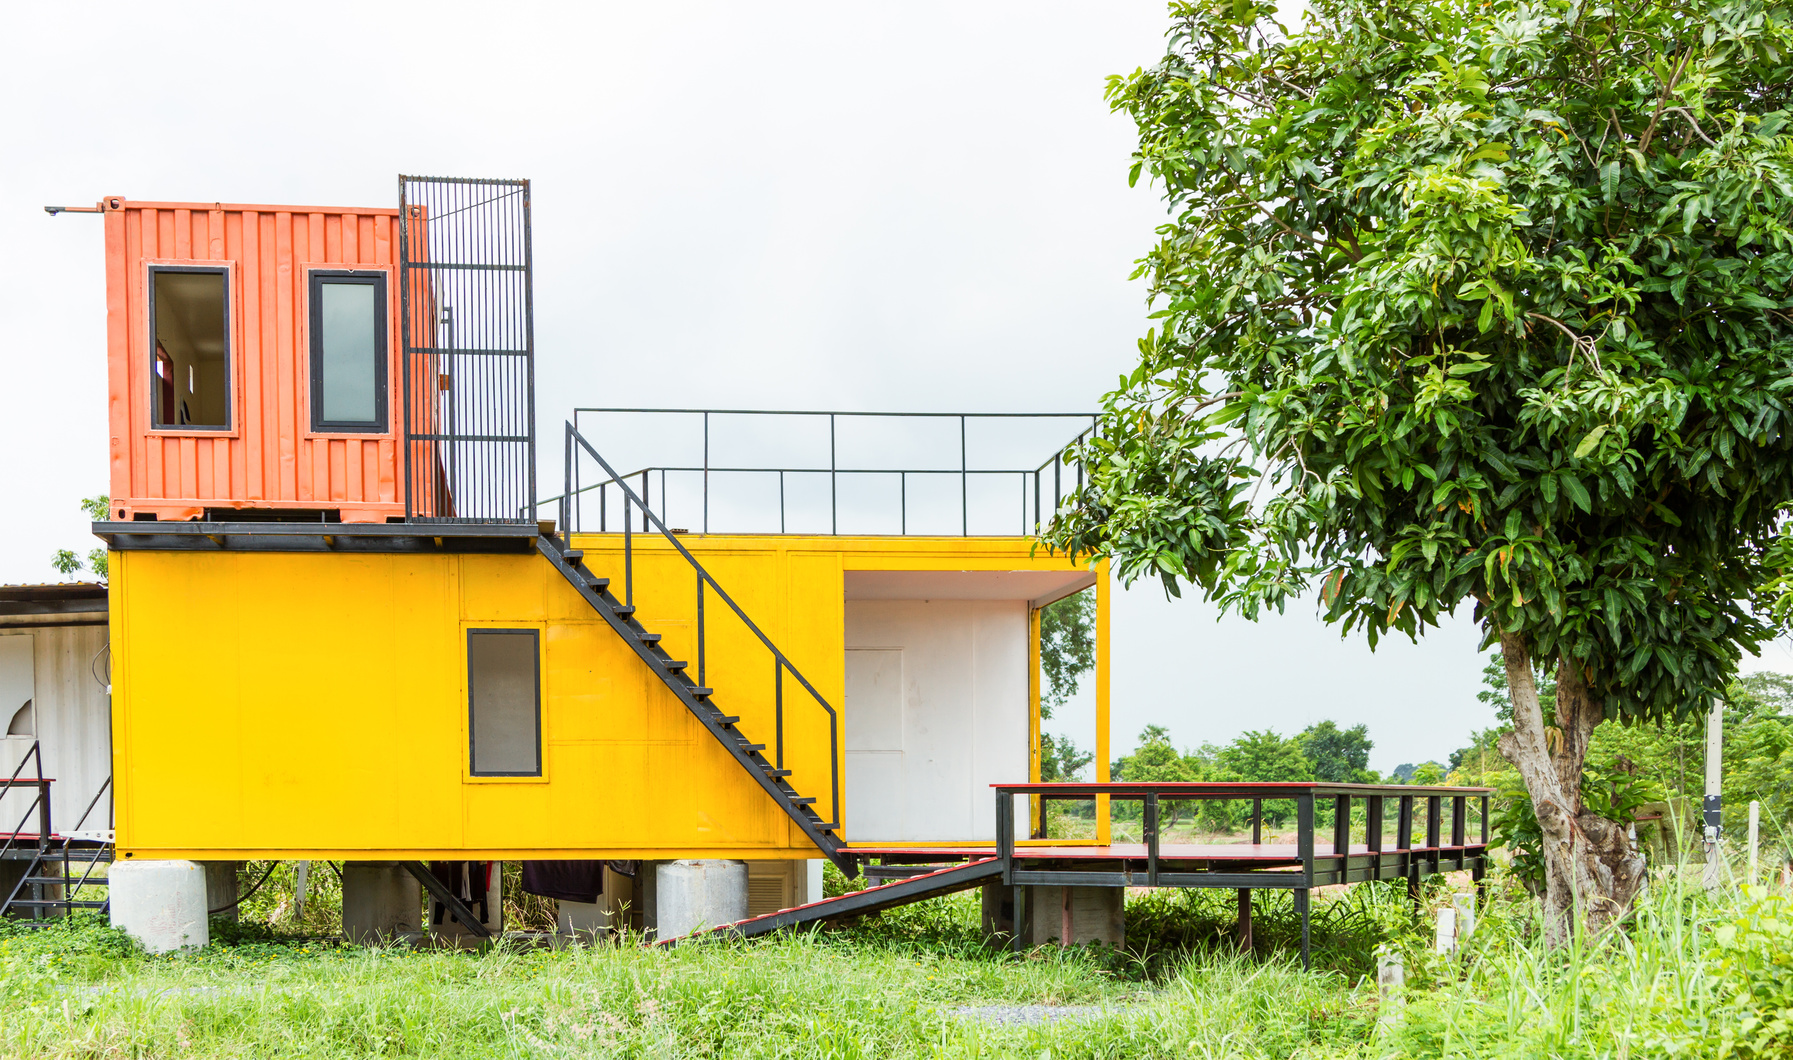 Logement container un concept en vogue cr dit agricole e immobilier - Container haus architekt ...